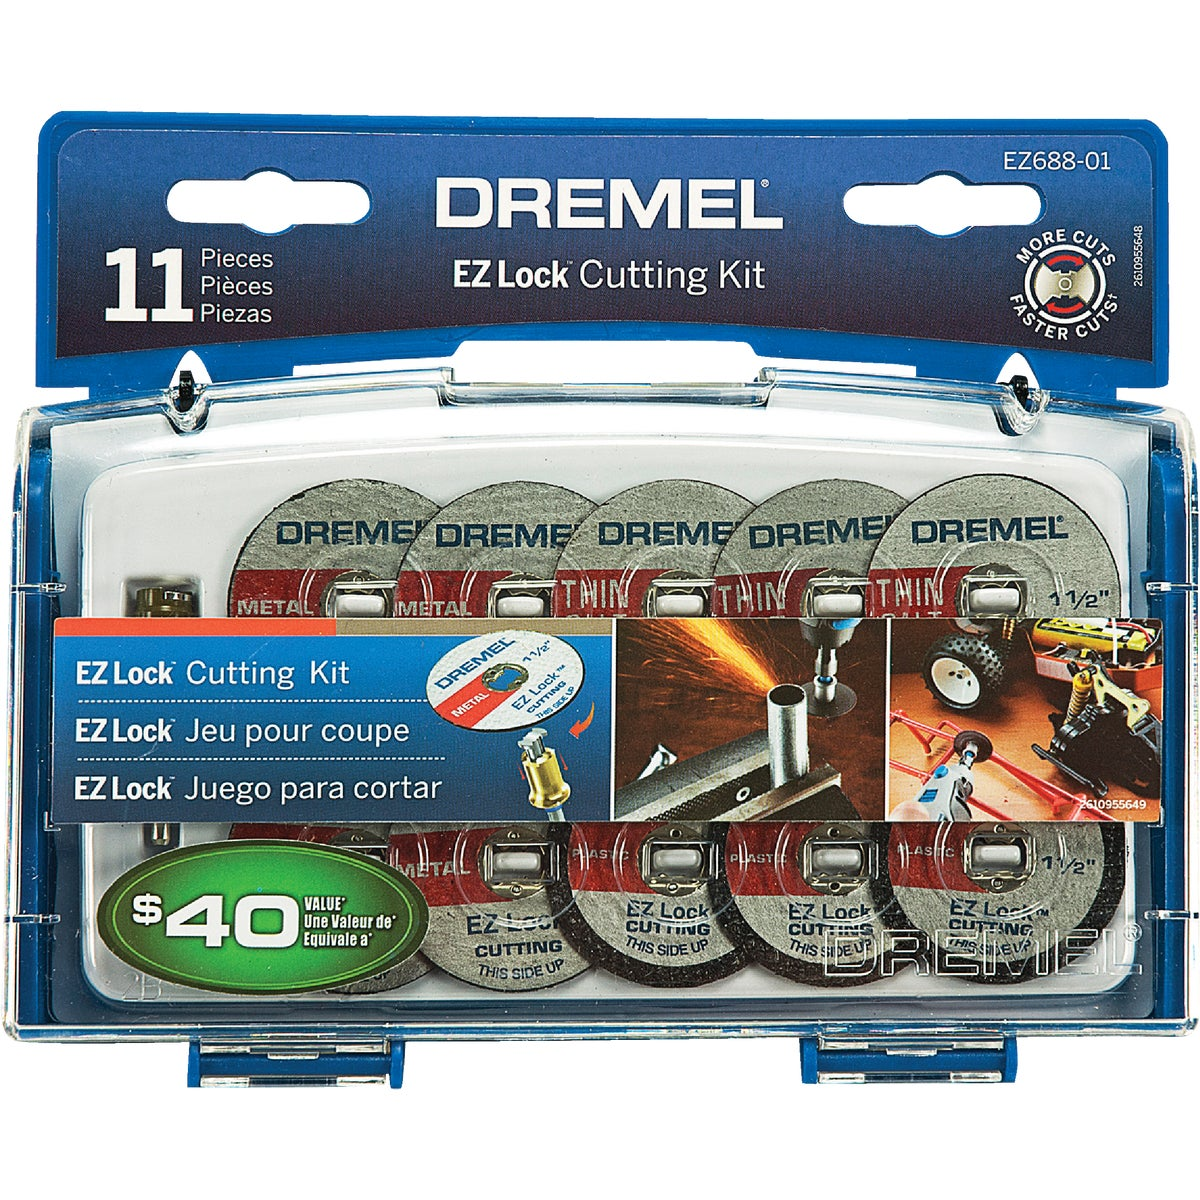 EZ LOCK MINI CUTTING KIT - EZ688-01 by Dremel Mfg Co